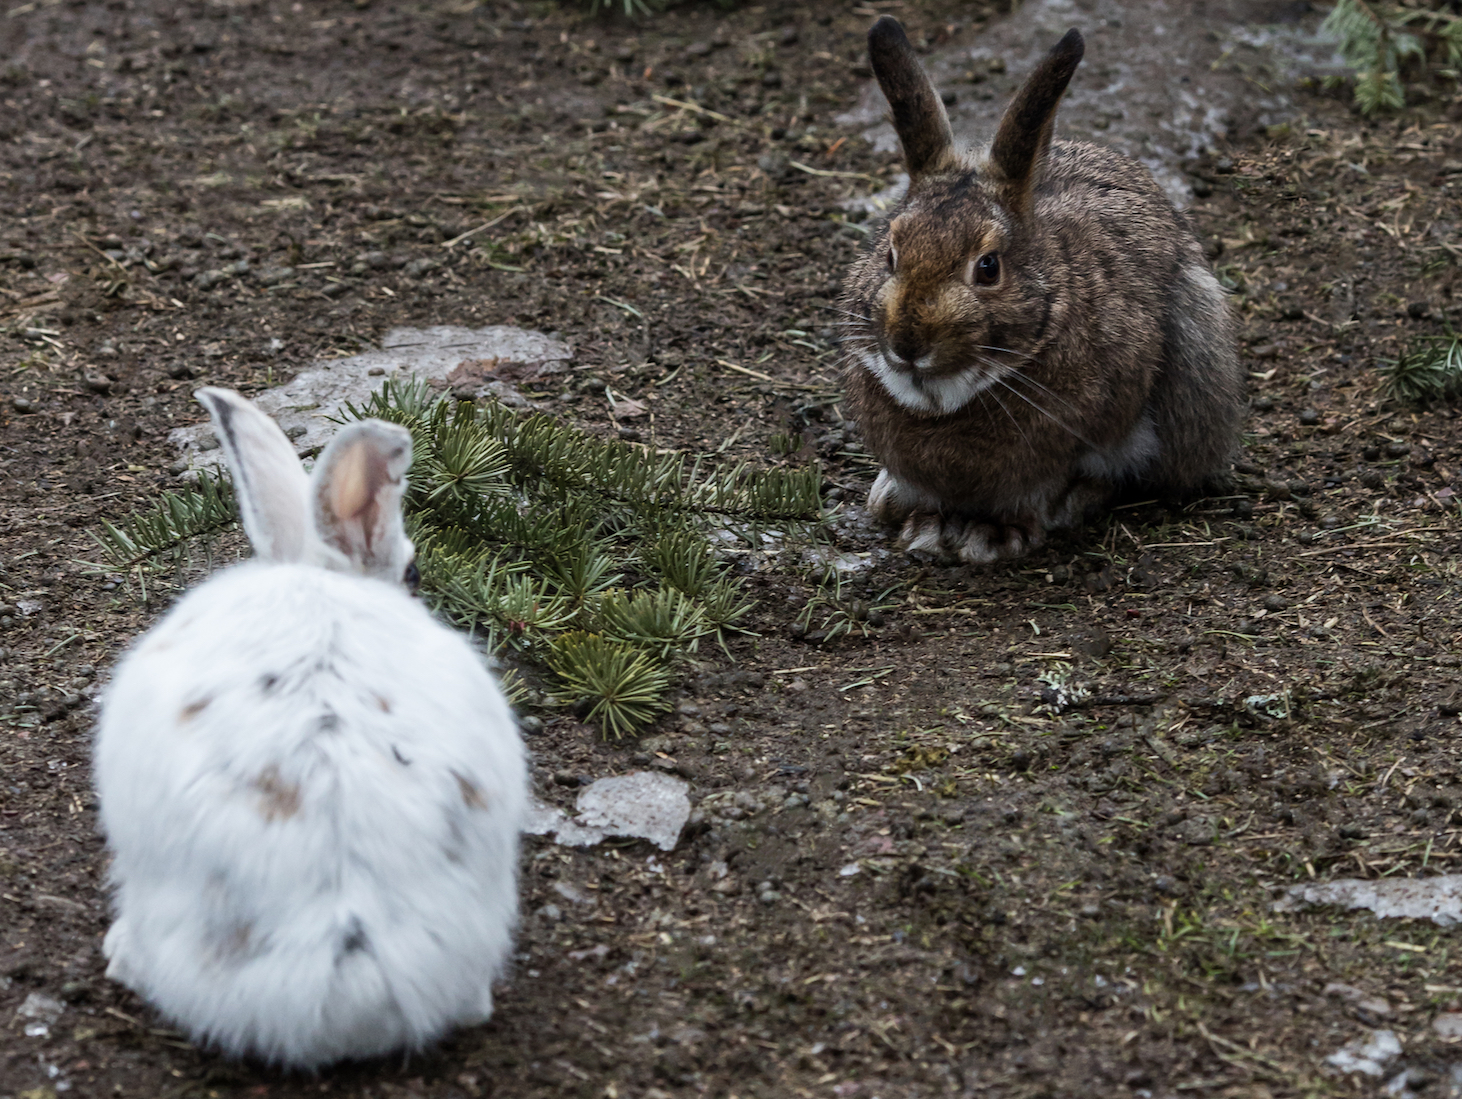 A team of scientists has found that snowshoe hares have inherited the ability to produce brown coats through hybridization with jackrabbits.